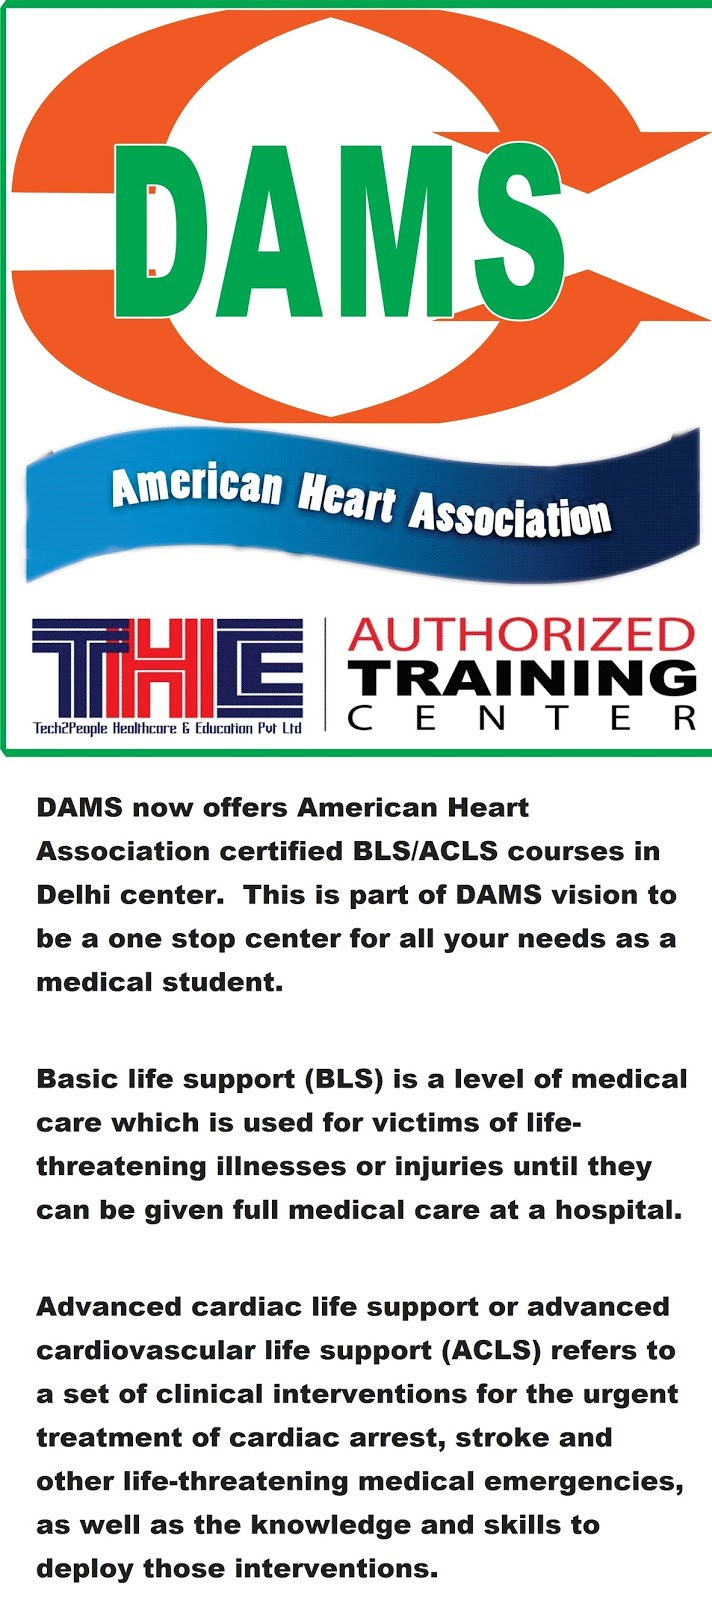 Basic Life Support And Advanced Cardiac Life Support Courses Now